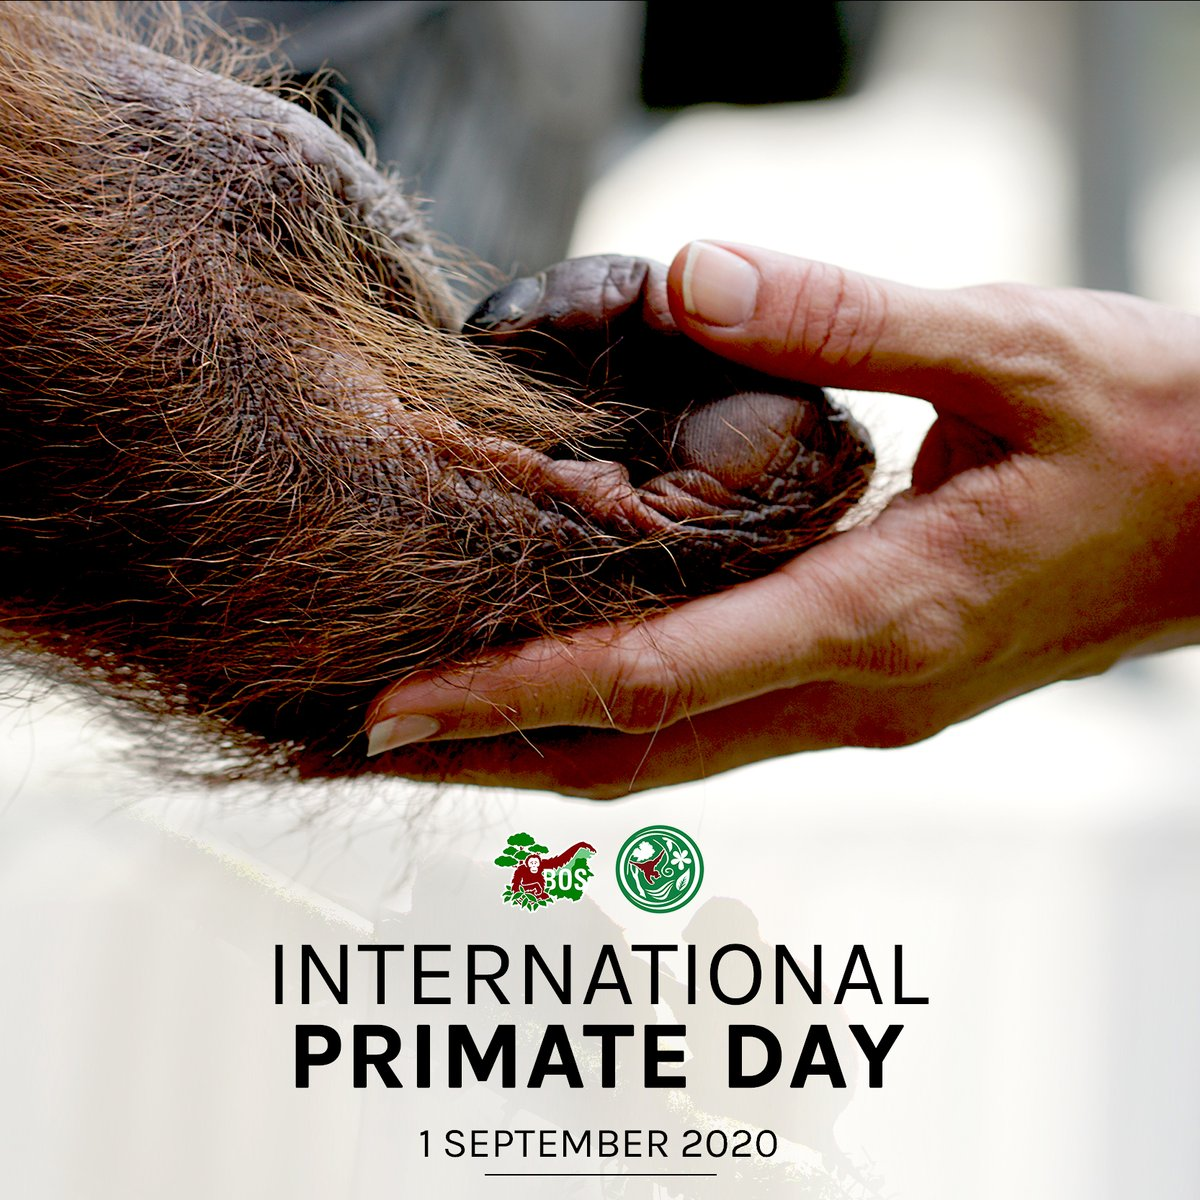 Happy #InternationalPrimateDay! All species of great apes, including the three orangutan species, are listed as Endangered or Critically Endangered. Let's work hand in hand to save these primate populations, to help preserve ecosystem integrity →https://t.co/dlFvMHmJ5k https://t.co/QfpbE6e5cX